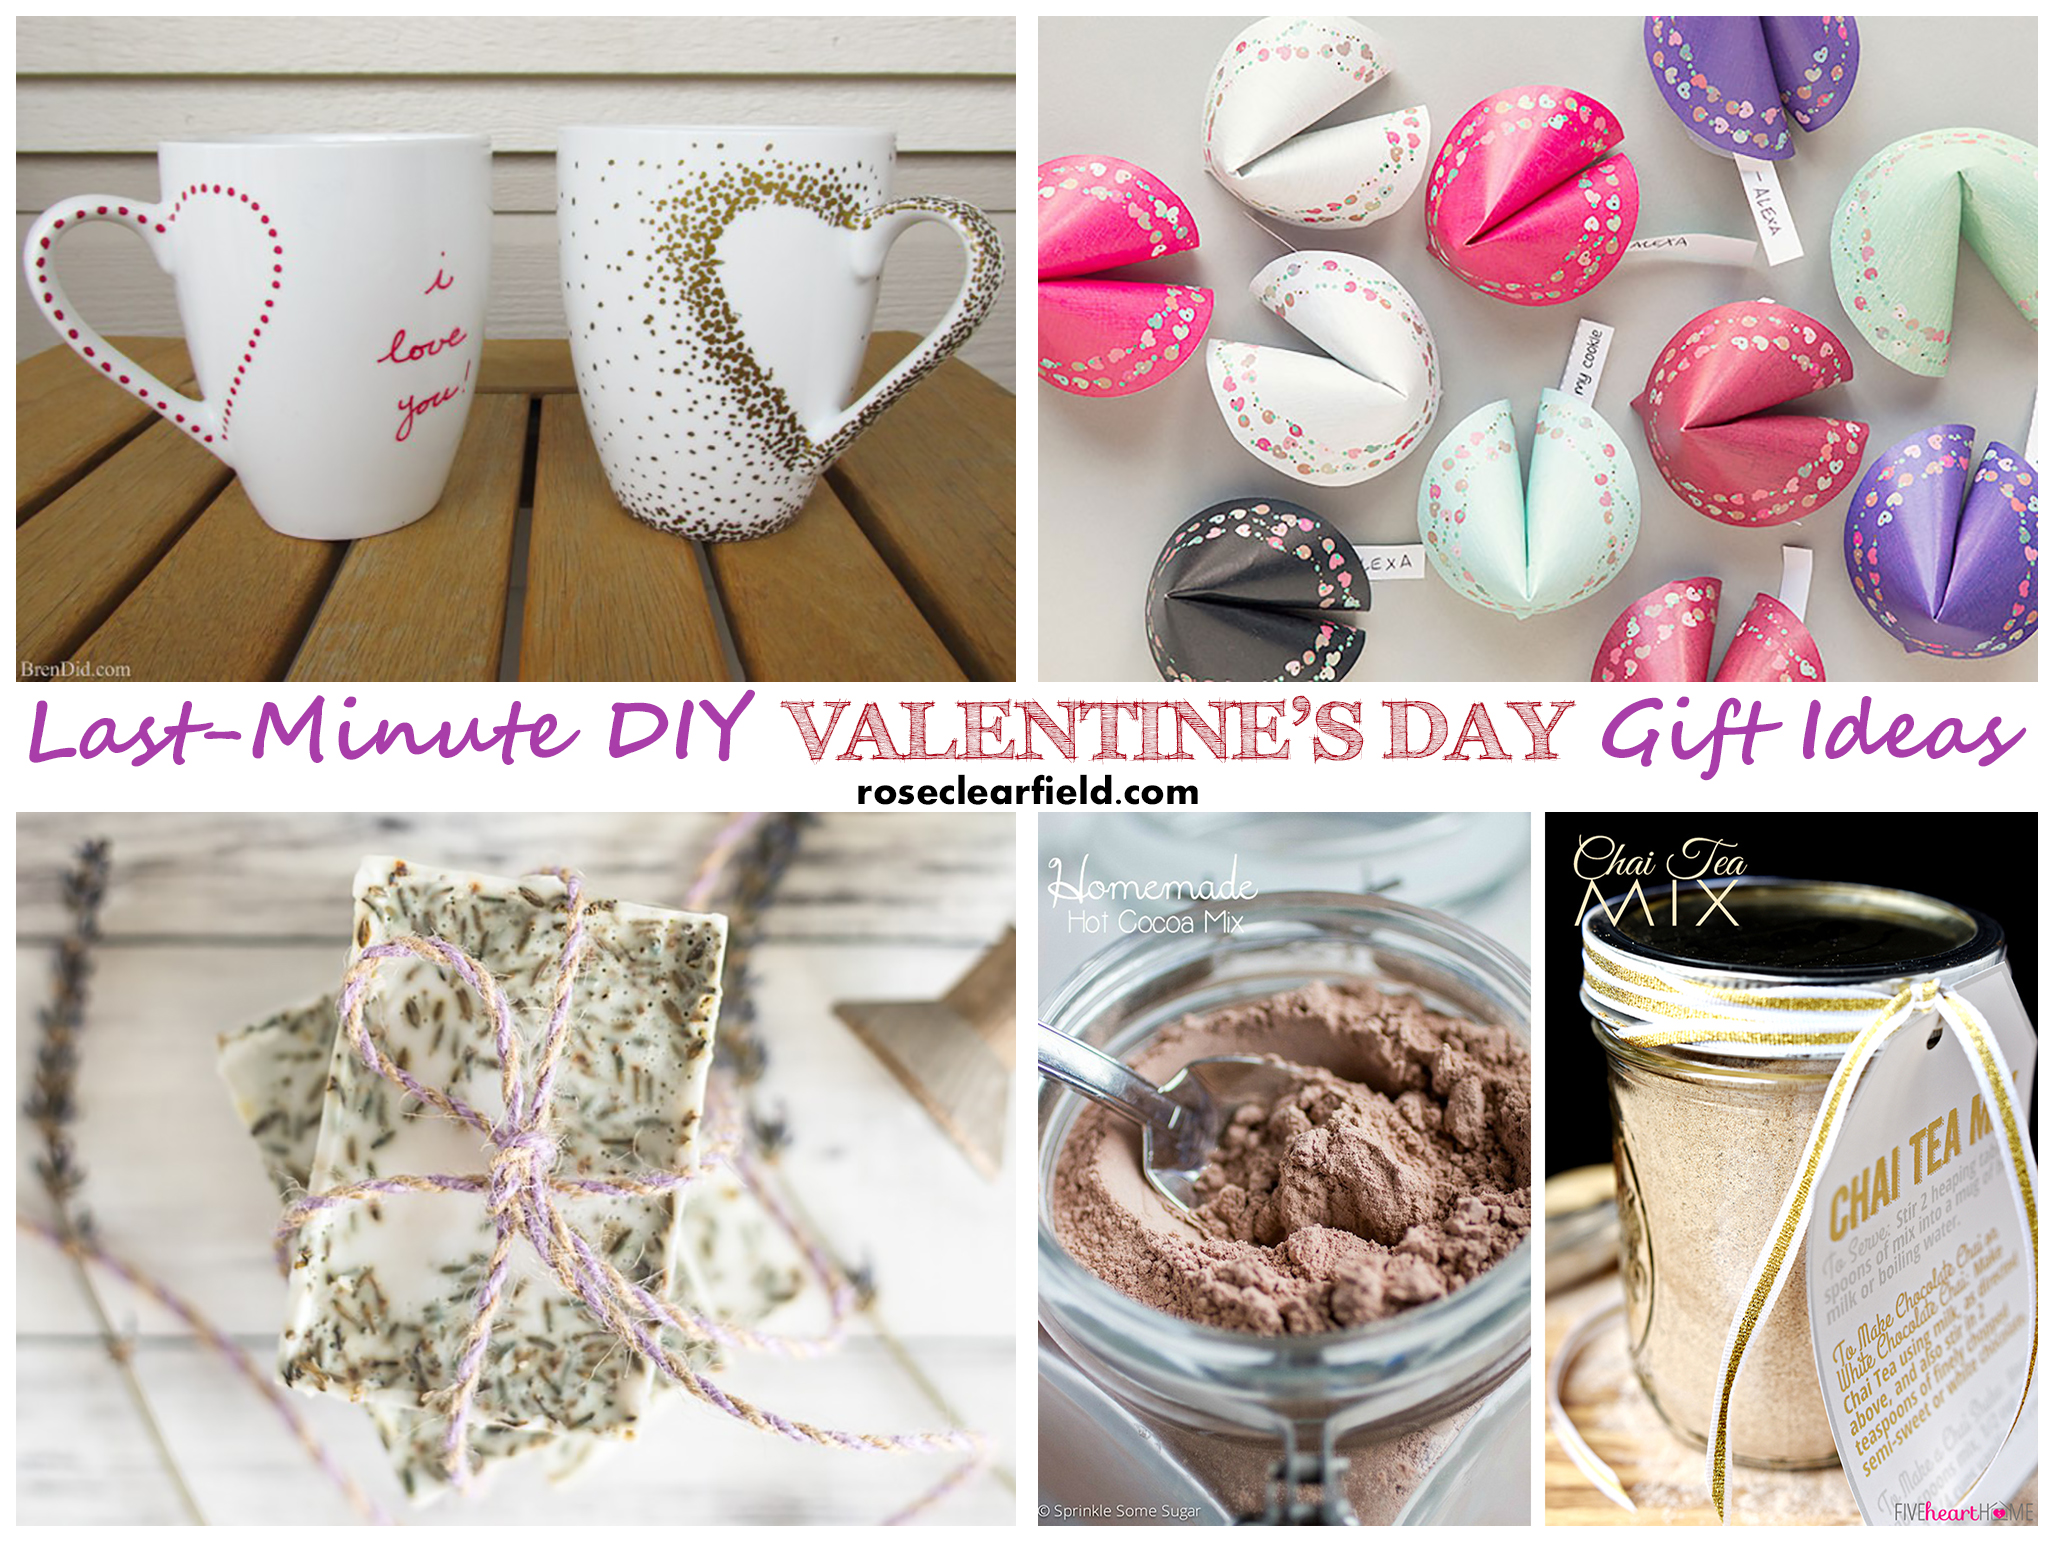 Last Minute DIY Valentine's Day Gift Ideas | http://www.roseclearfield.com